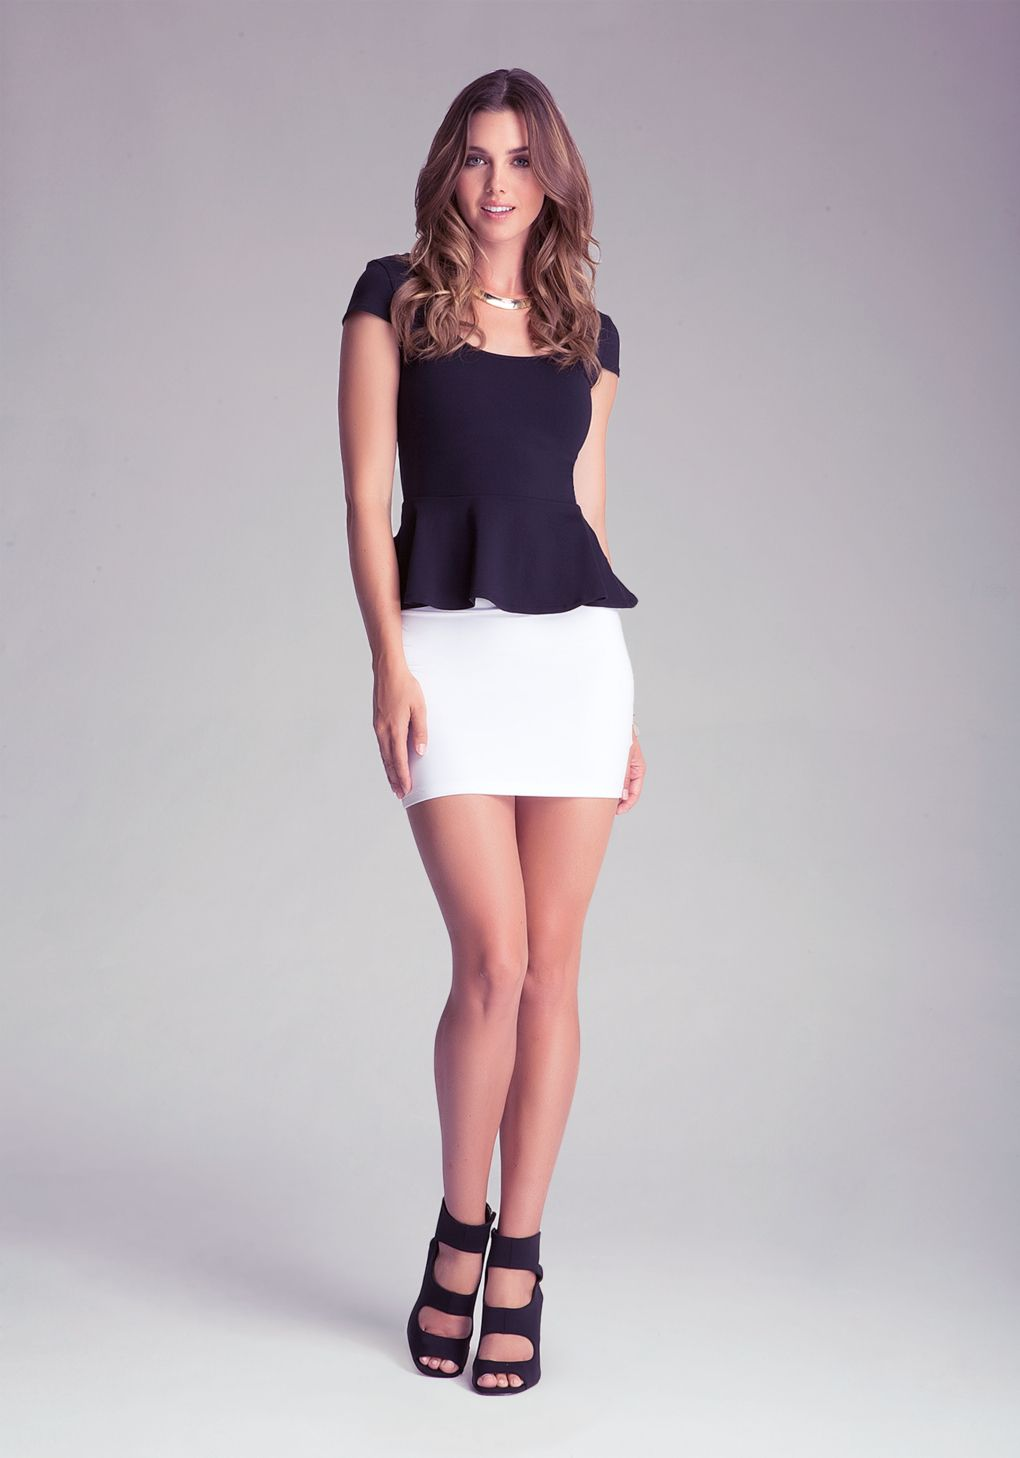 Women's White High Waist Miniskirt | Best High waist and Bebe ideas